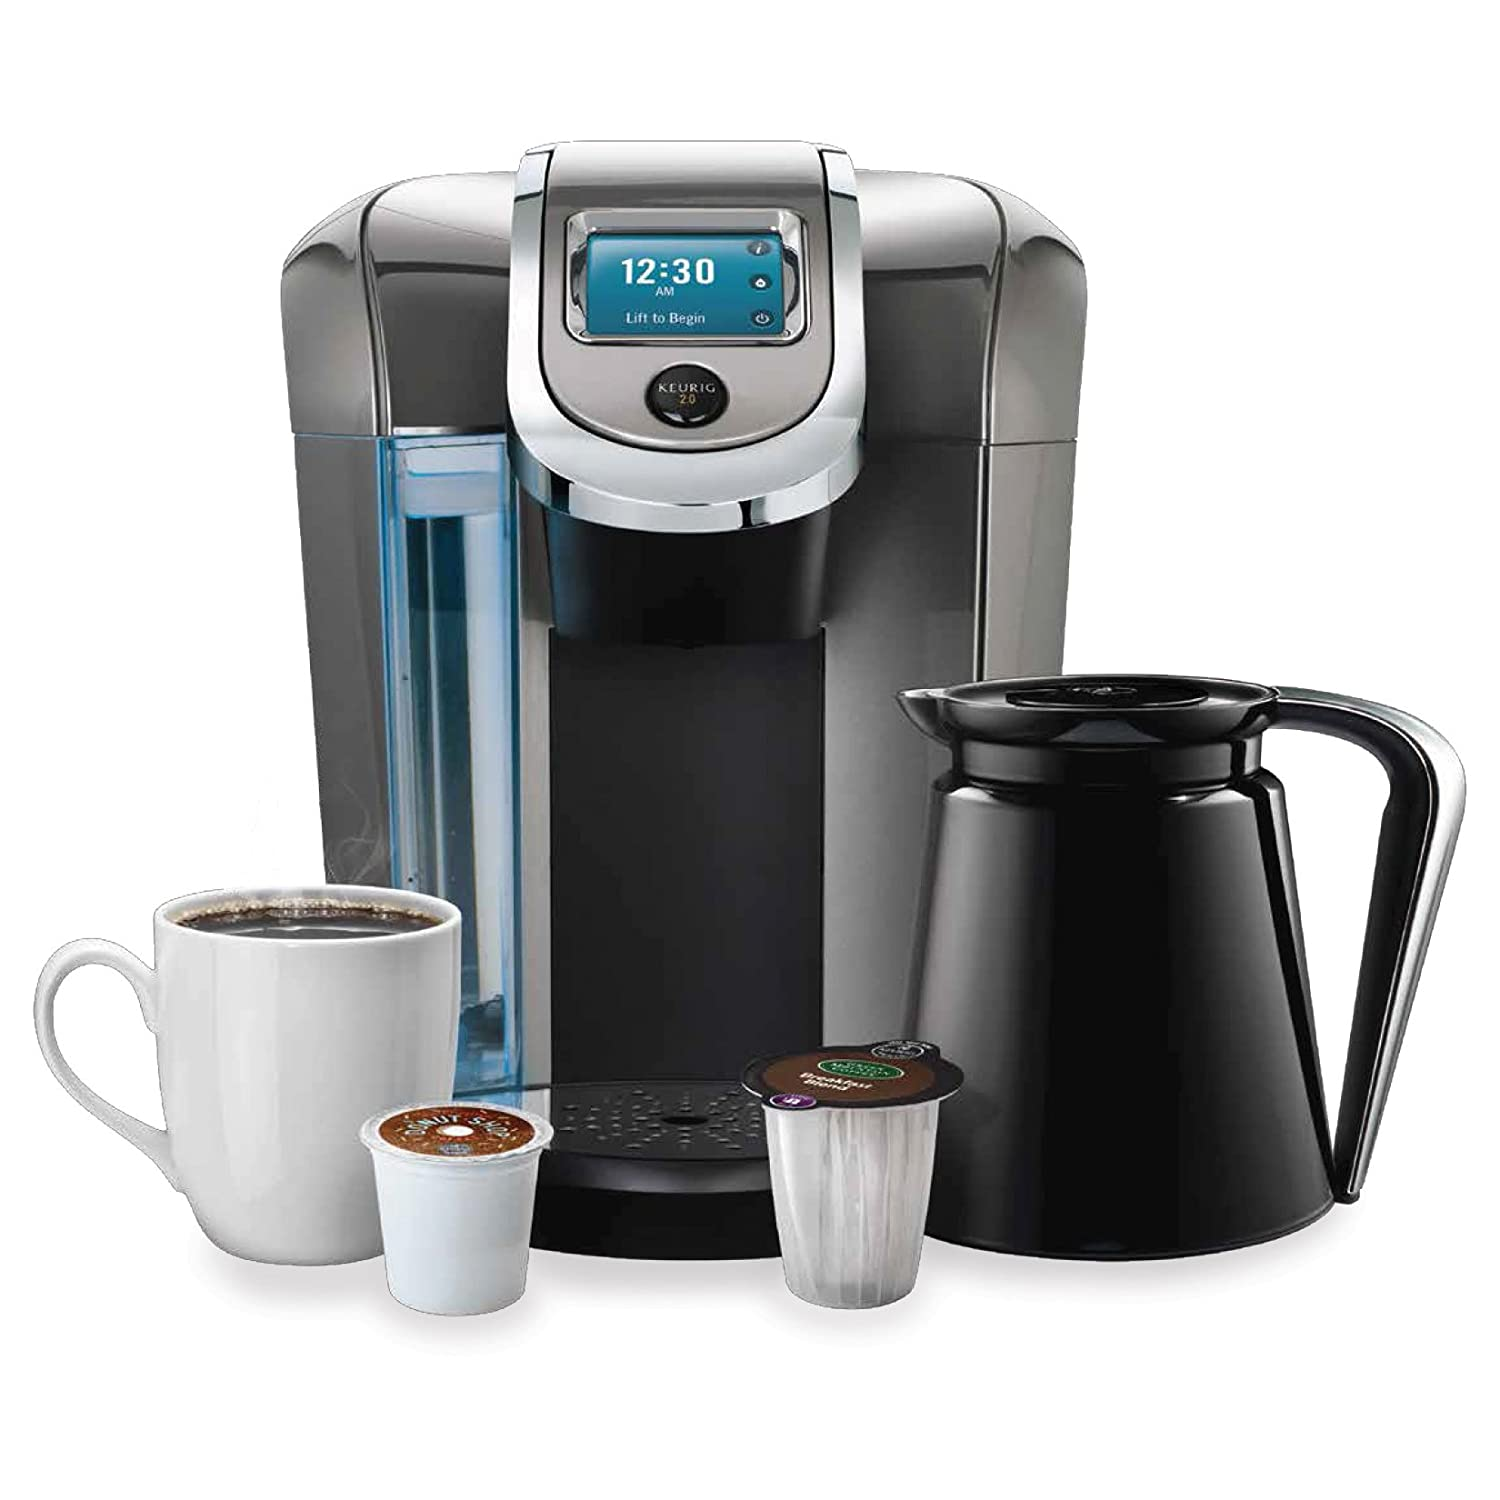 Keurig Coffee Maker Instructions Prime : Keurig 2.0 Brewer Review